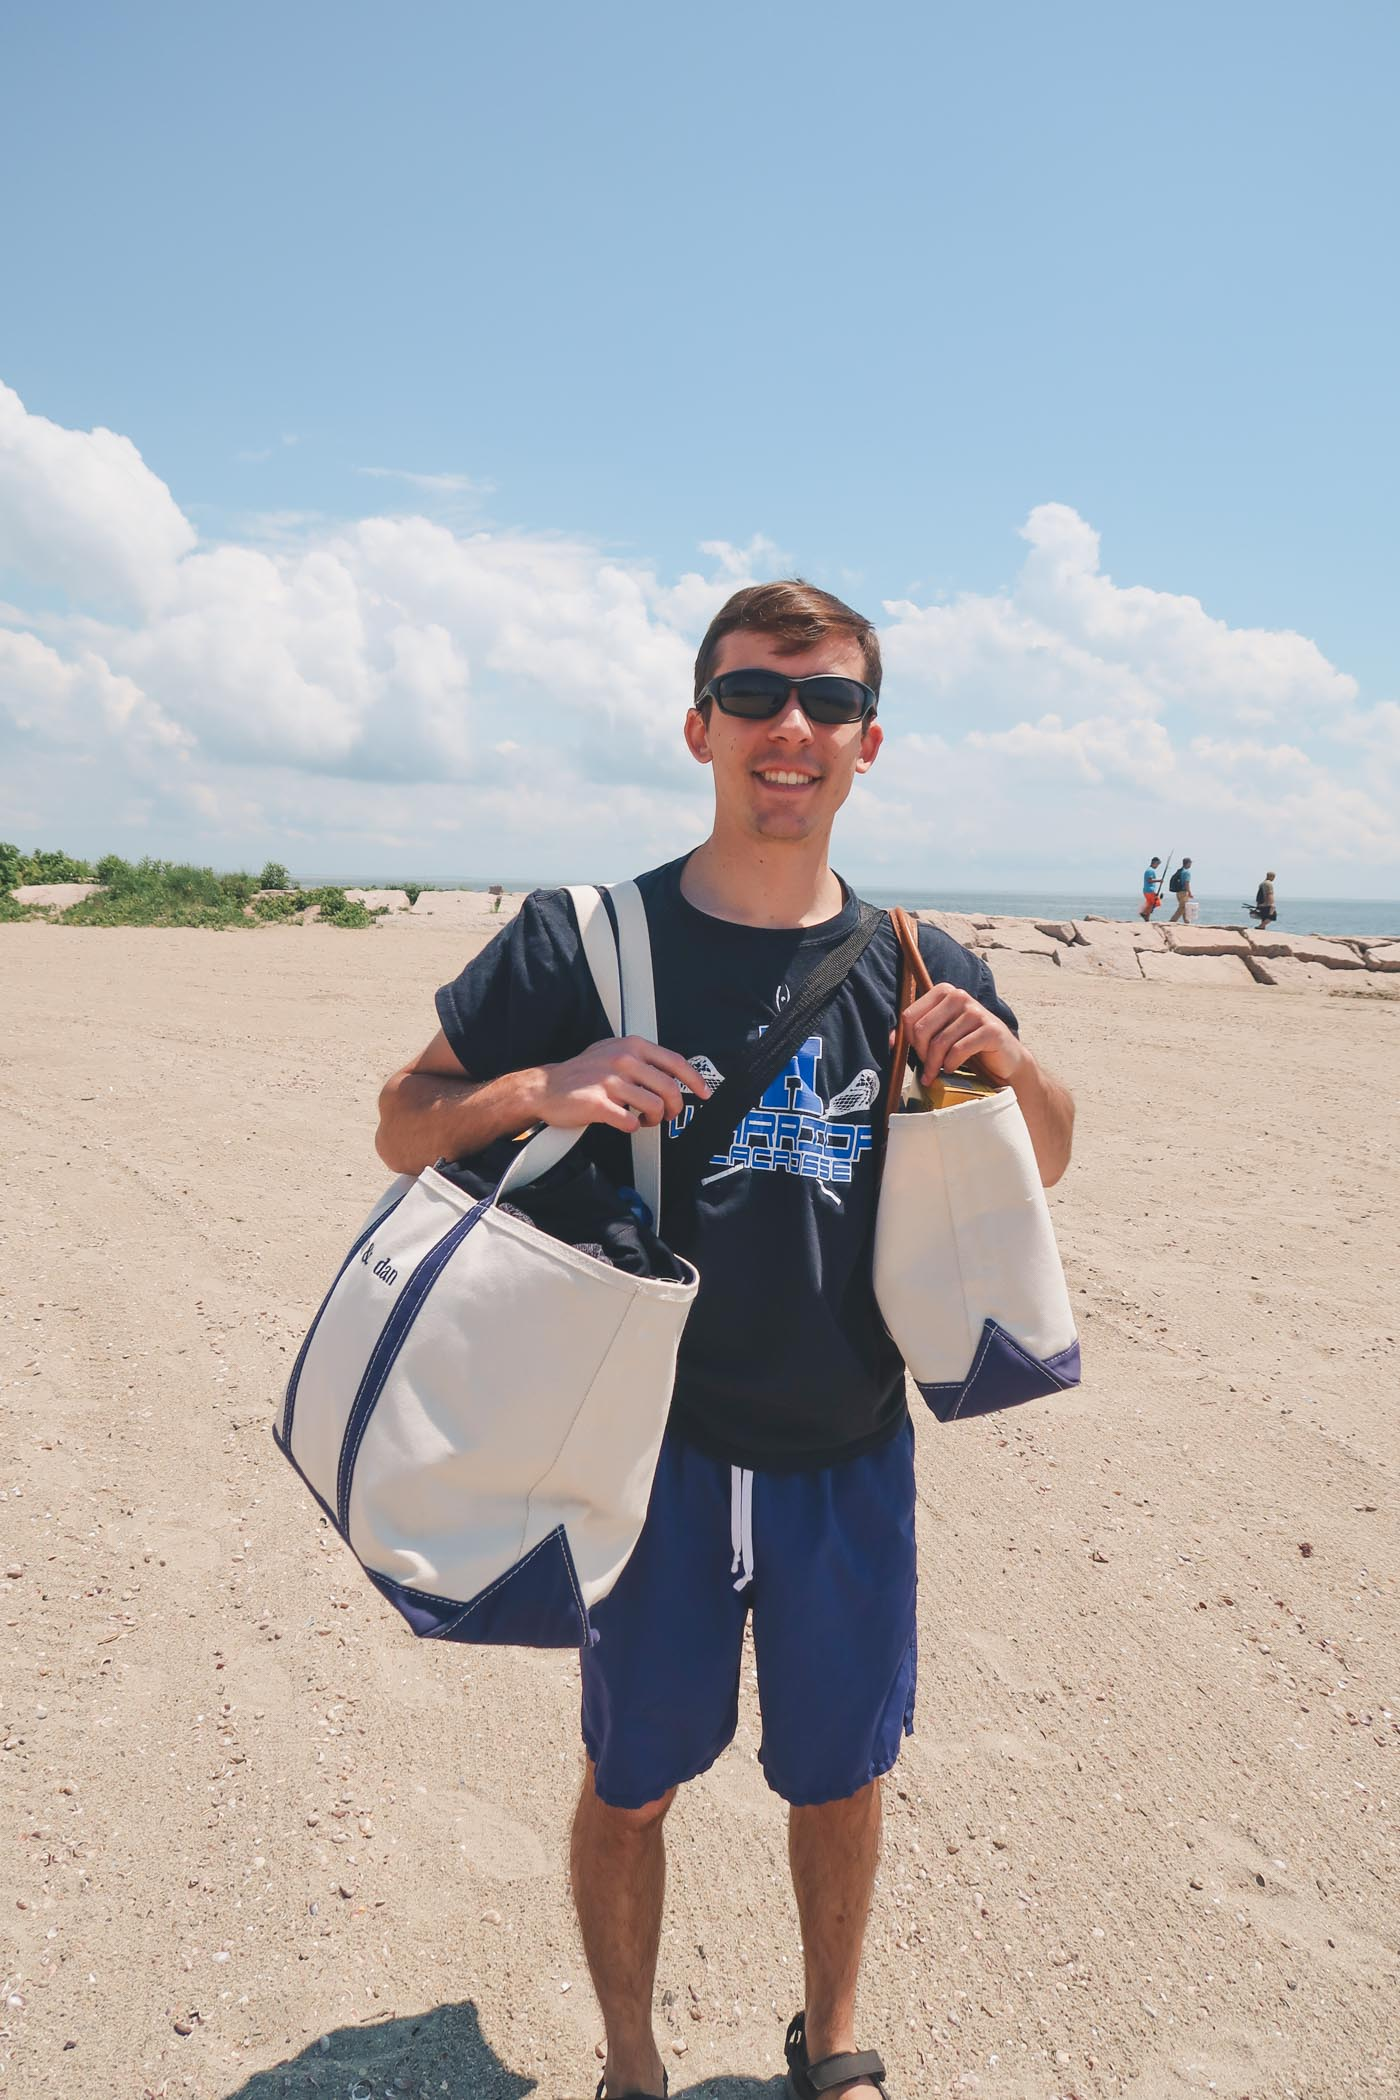 When bae holds all the beach bags for you